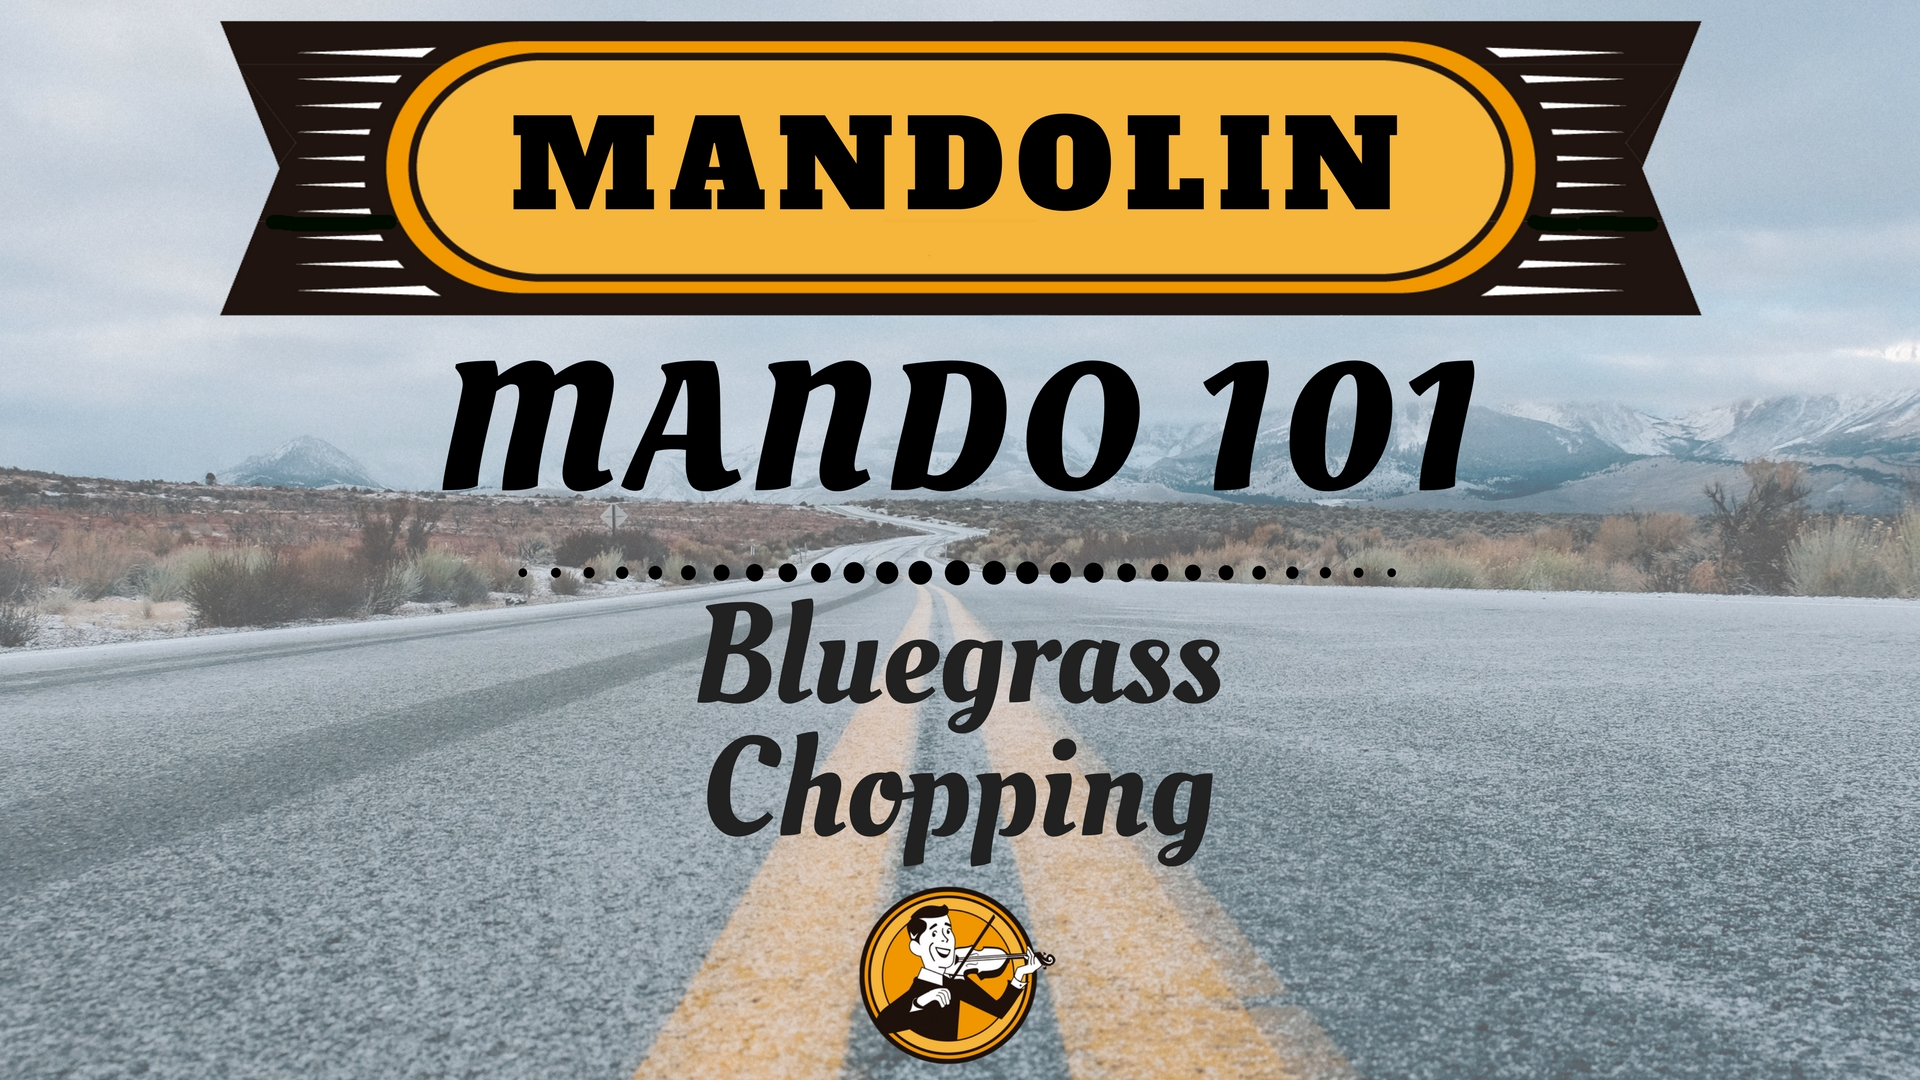 Mando 101 Bluegrass Chopping (1)